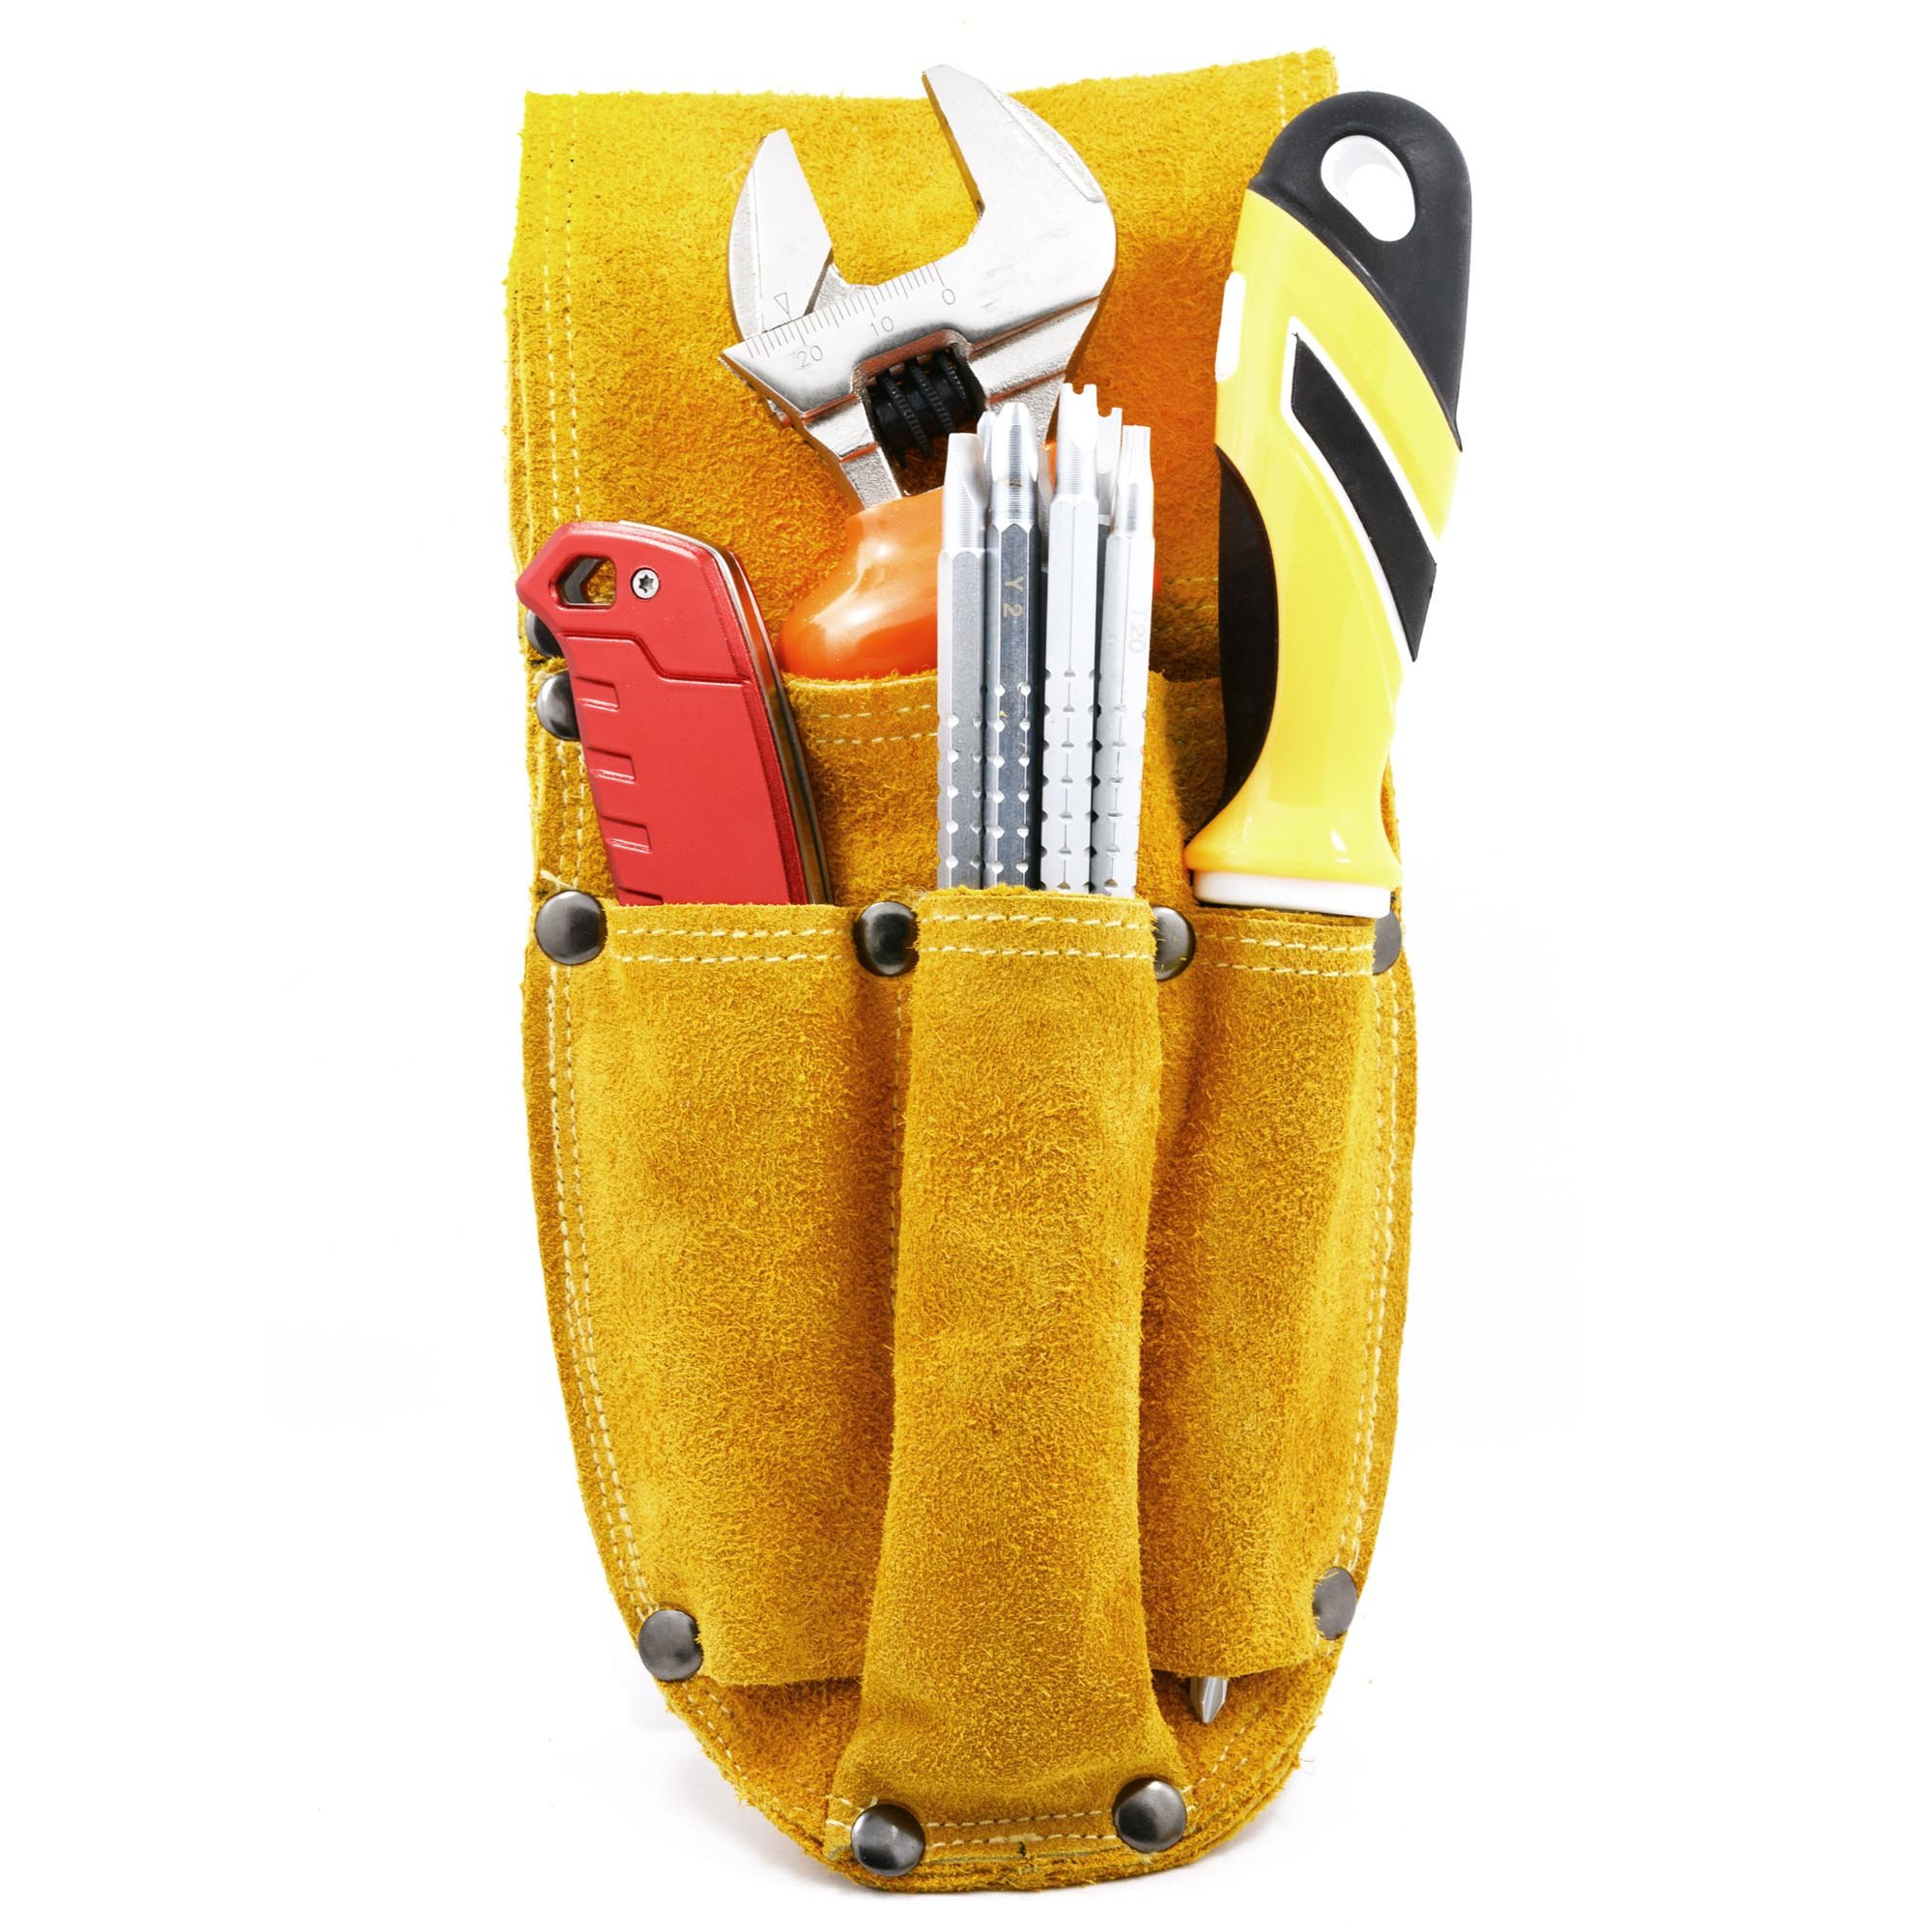 Koopi Heavy Duty Bilayer Suede Electriciann Machinist Tool Bag Holster Pouch Carpenter Work Apron And Gardener Tool Organizer-4 Pocket by Koopi (Image #5)